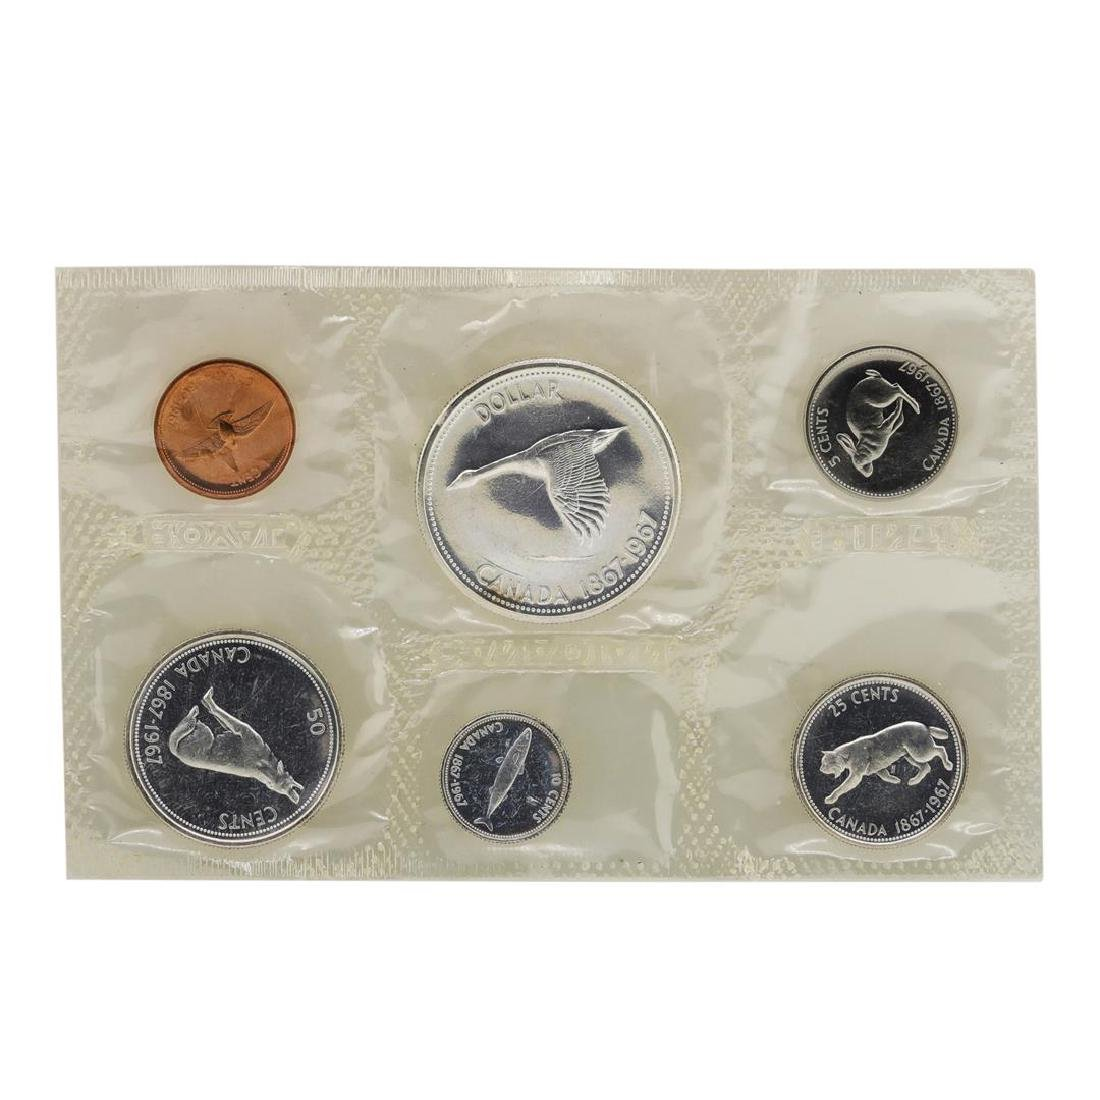 1967 Canada (6) Coin Proof Set w/ Envelope - 3